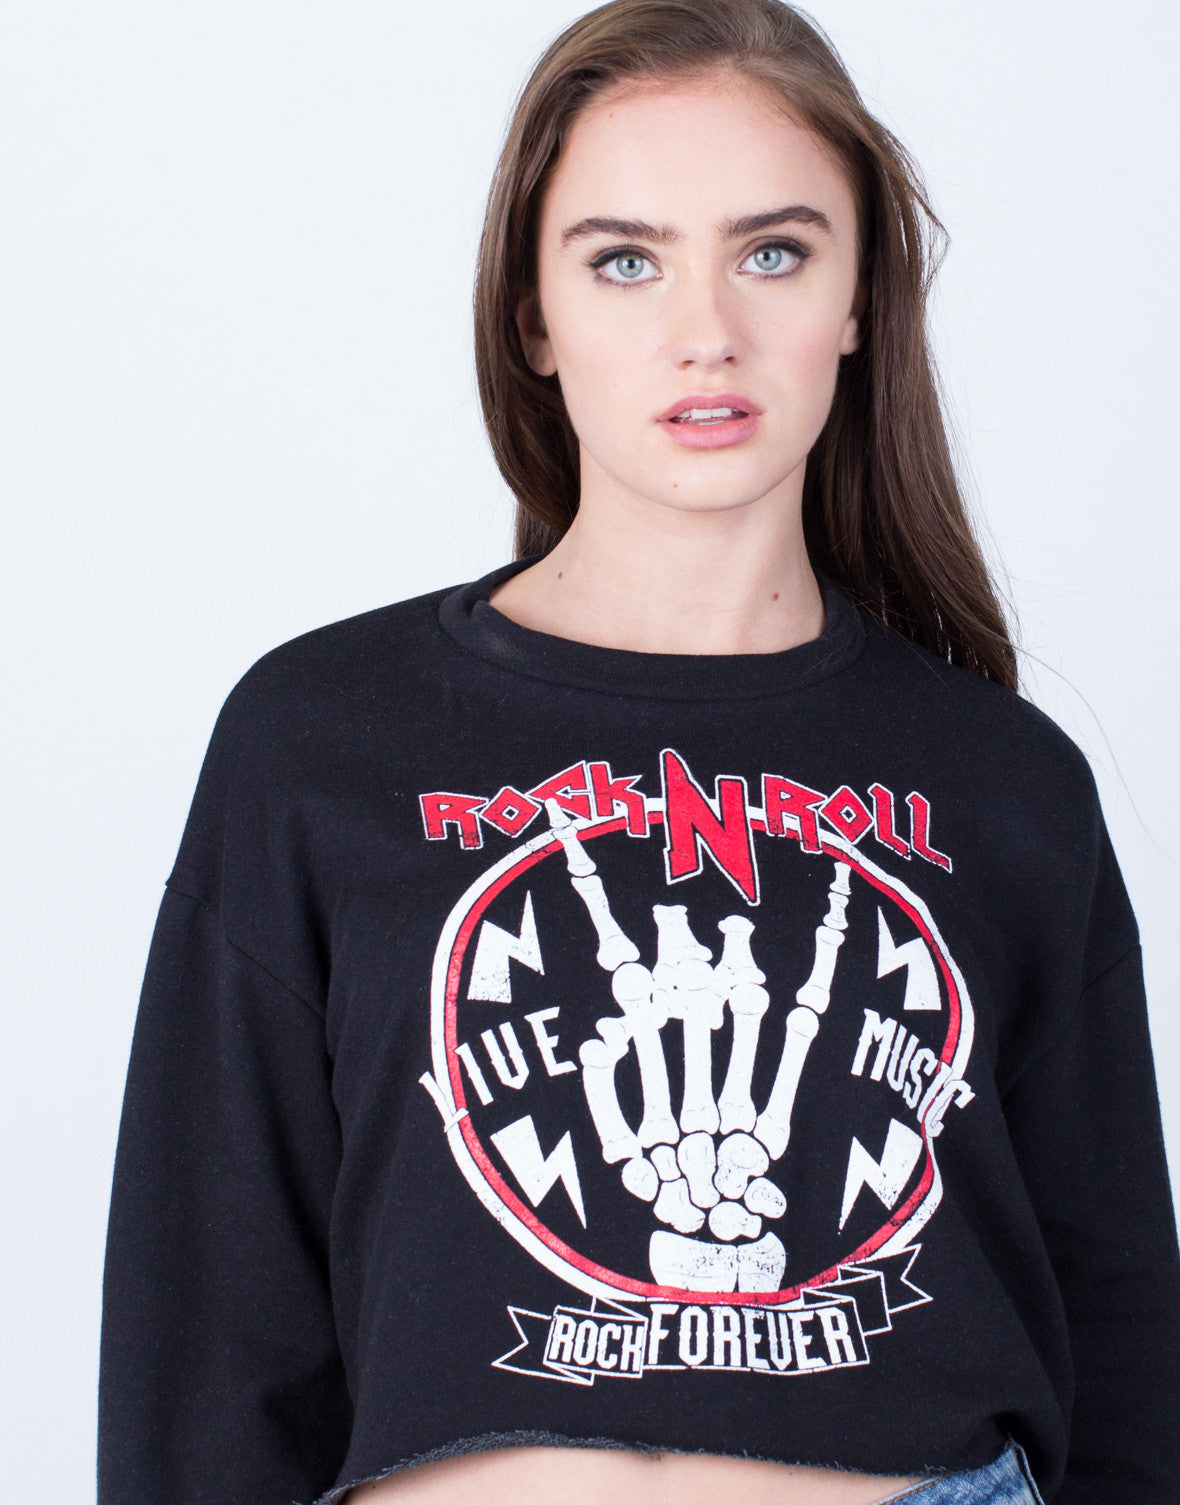 Detail of Rock n' Roll Sweatshirt